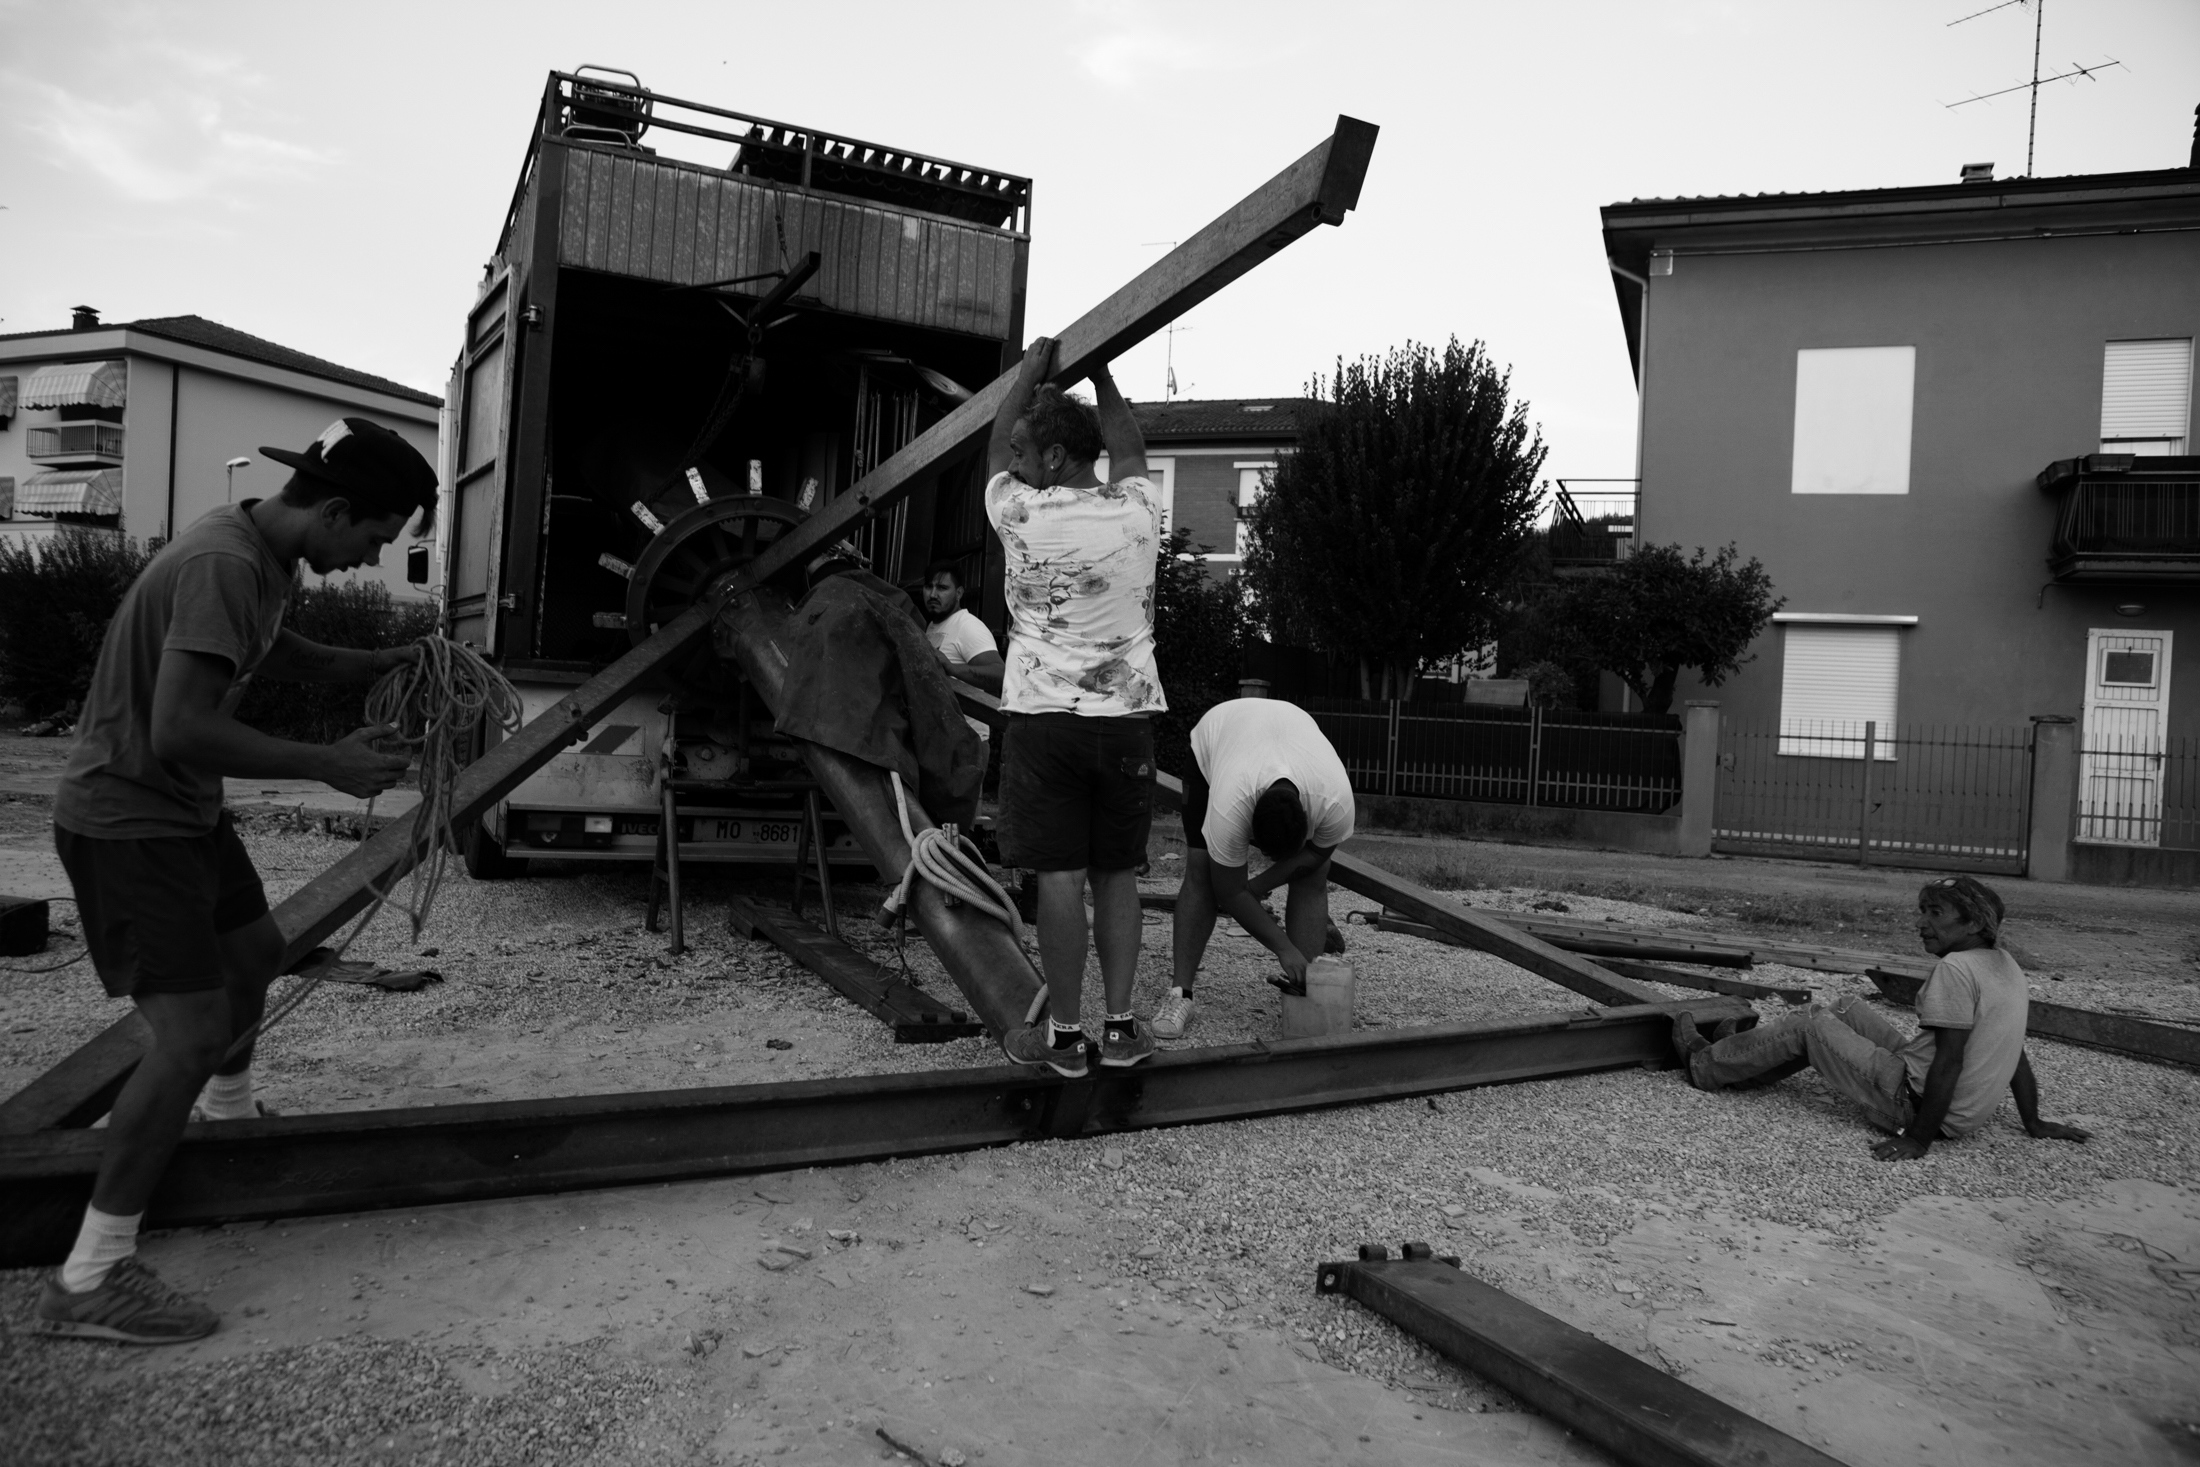 August 2017, Soliera, Emilia-Romagna, Italy. Elix and his brothers work on assembling their carousel, a few days before the country fair. They meet sporadically throughout the year, and fairs are one of those occasions when families can meet to work and spend time together.